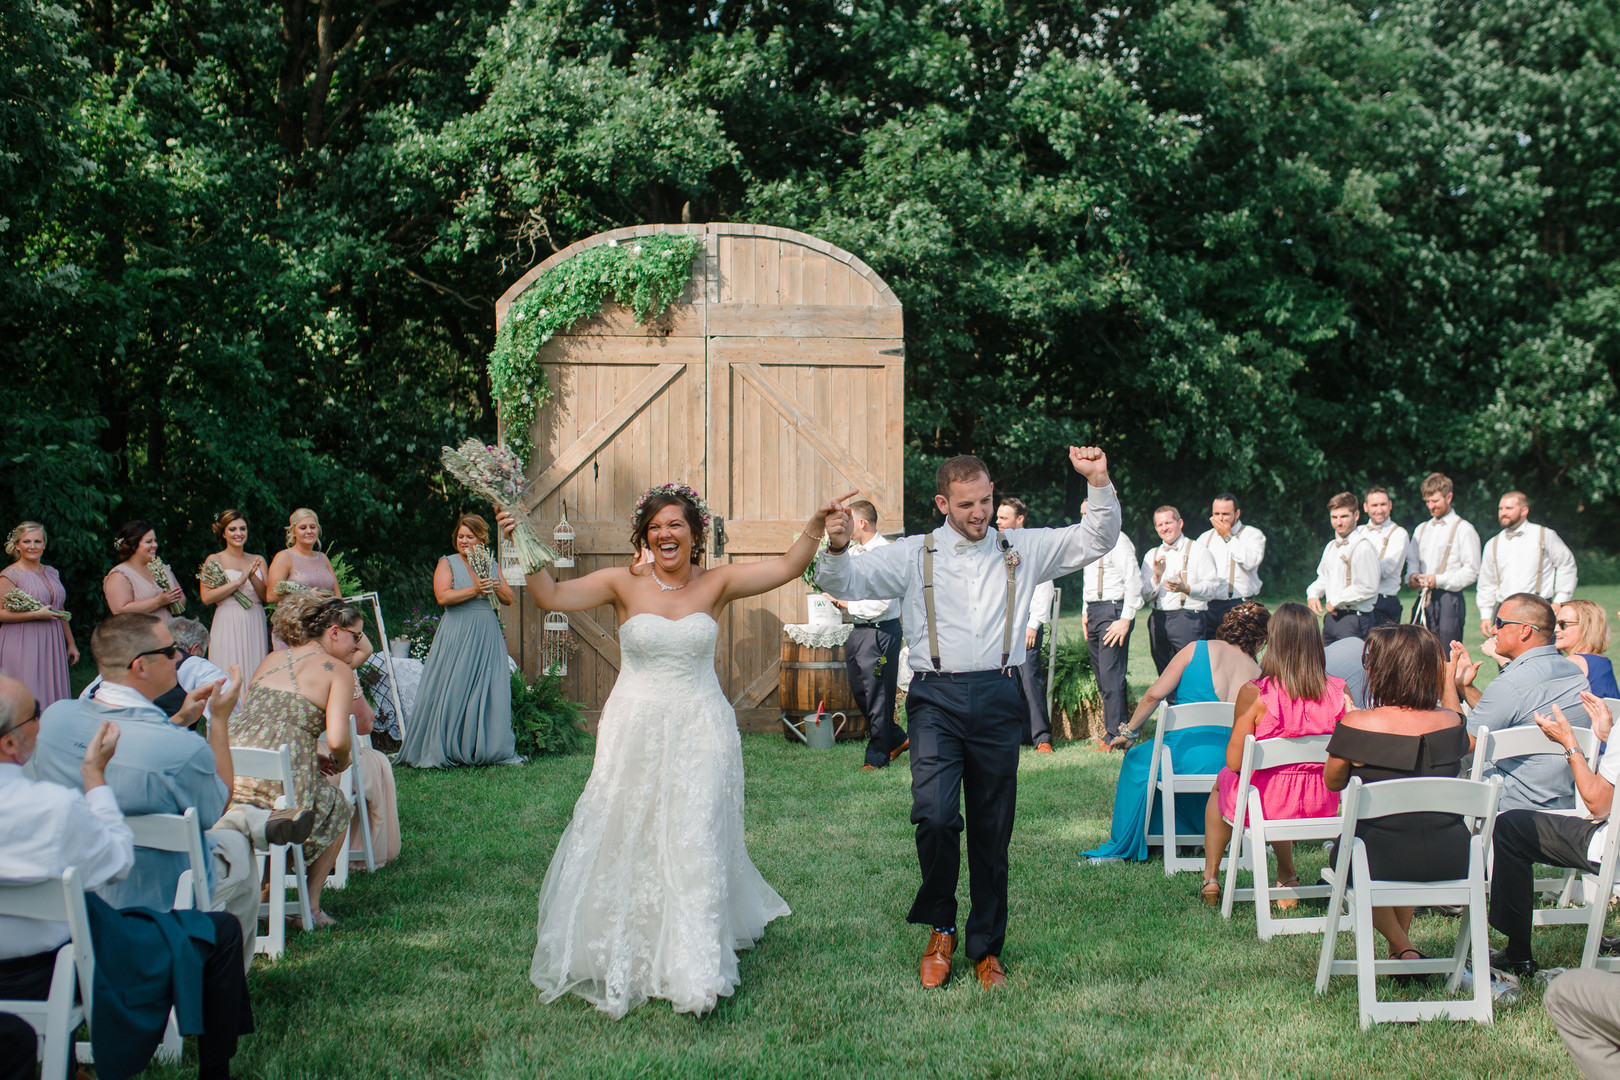 Just married: Rustic country wedding in Minooka, IL captured by Katie Brsan Photography. Visit CHItheeWED.com for more wedding inspiration!